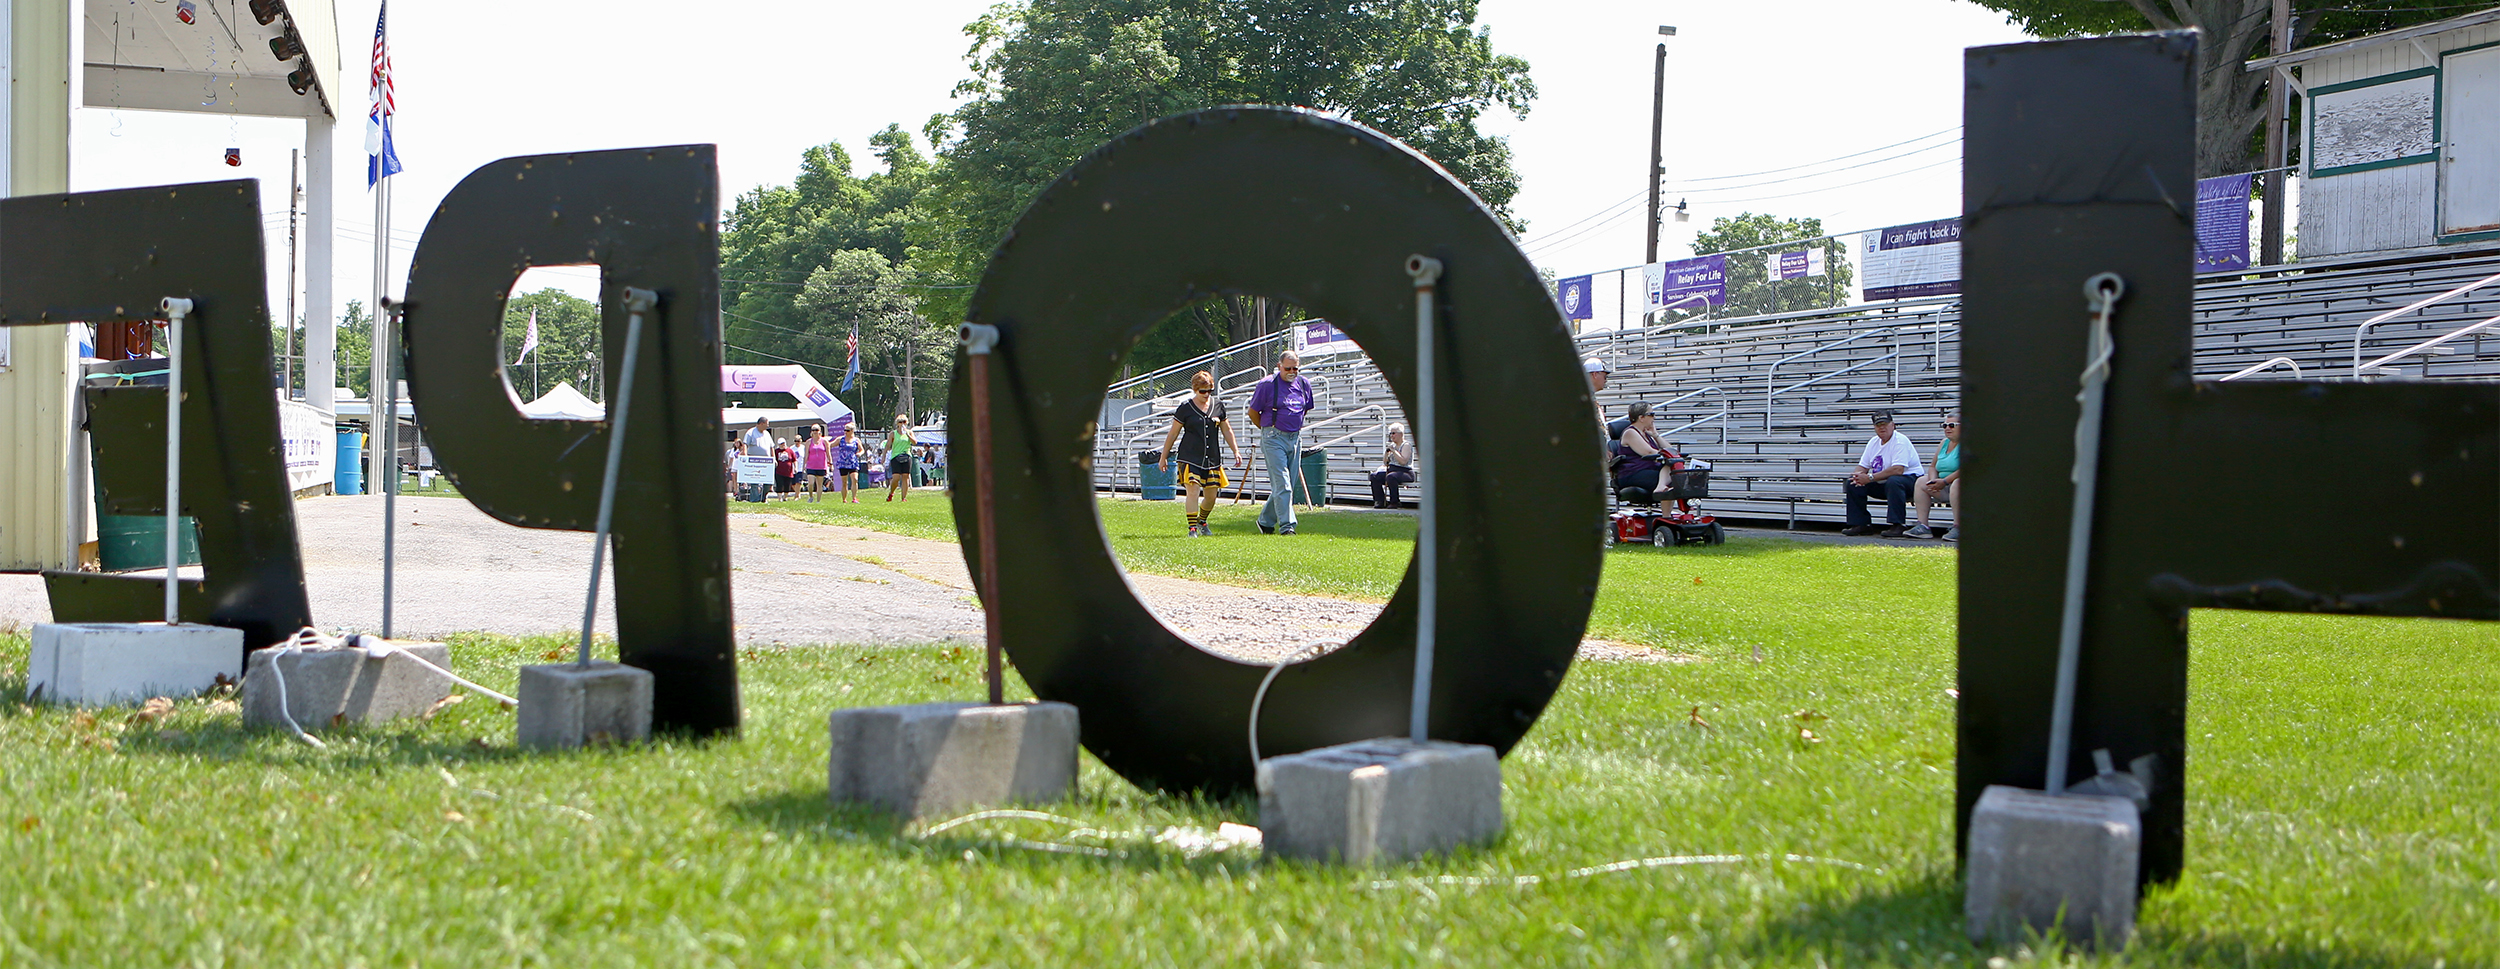 """A large illuminated """"Hope"""" sign is set up next to the Grange Fair Grounds for Happy Valley Relay for Life participants to see as they walk the grounds for the next 24 hours to fundraise for cancer research on Saturday, June 25, 2016."""